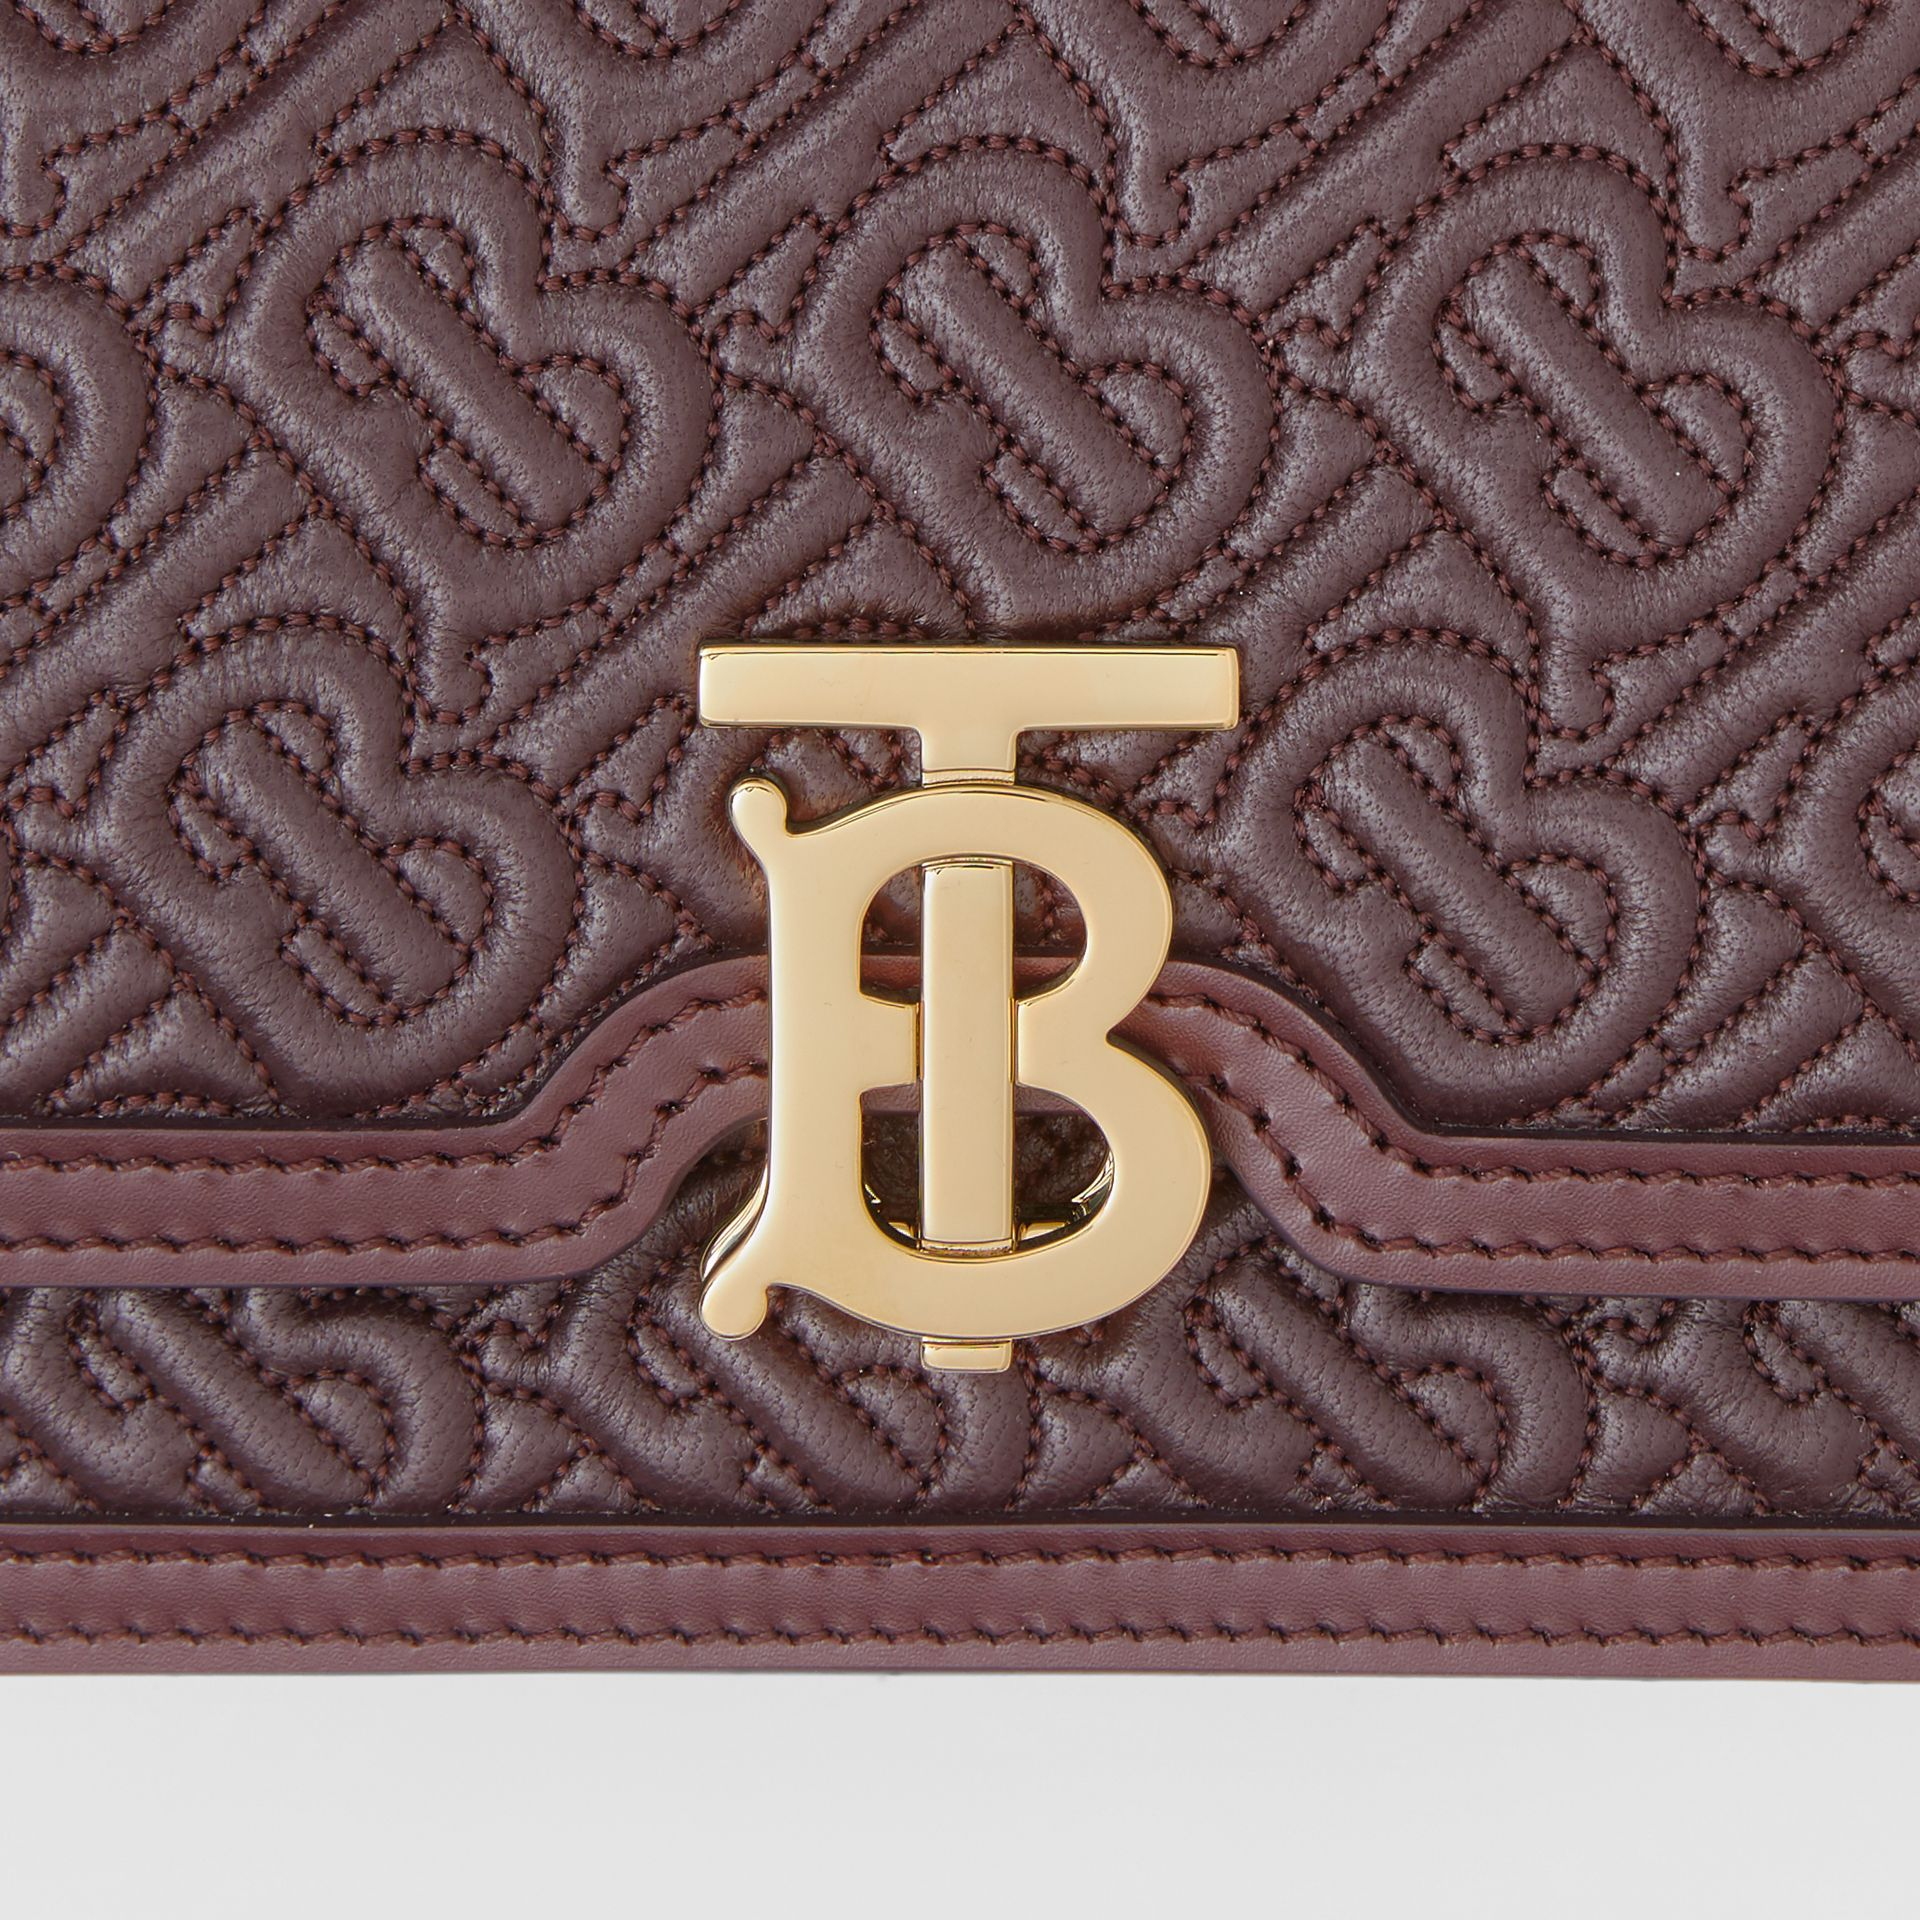 Mini Quilted Monogram Lambskin TB Bag in Dark Burgundy - Women | Burberry United Kingdom - gallery image 1